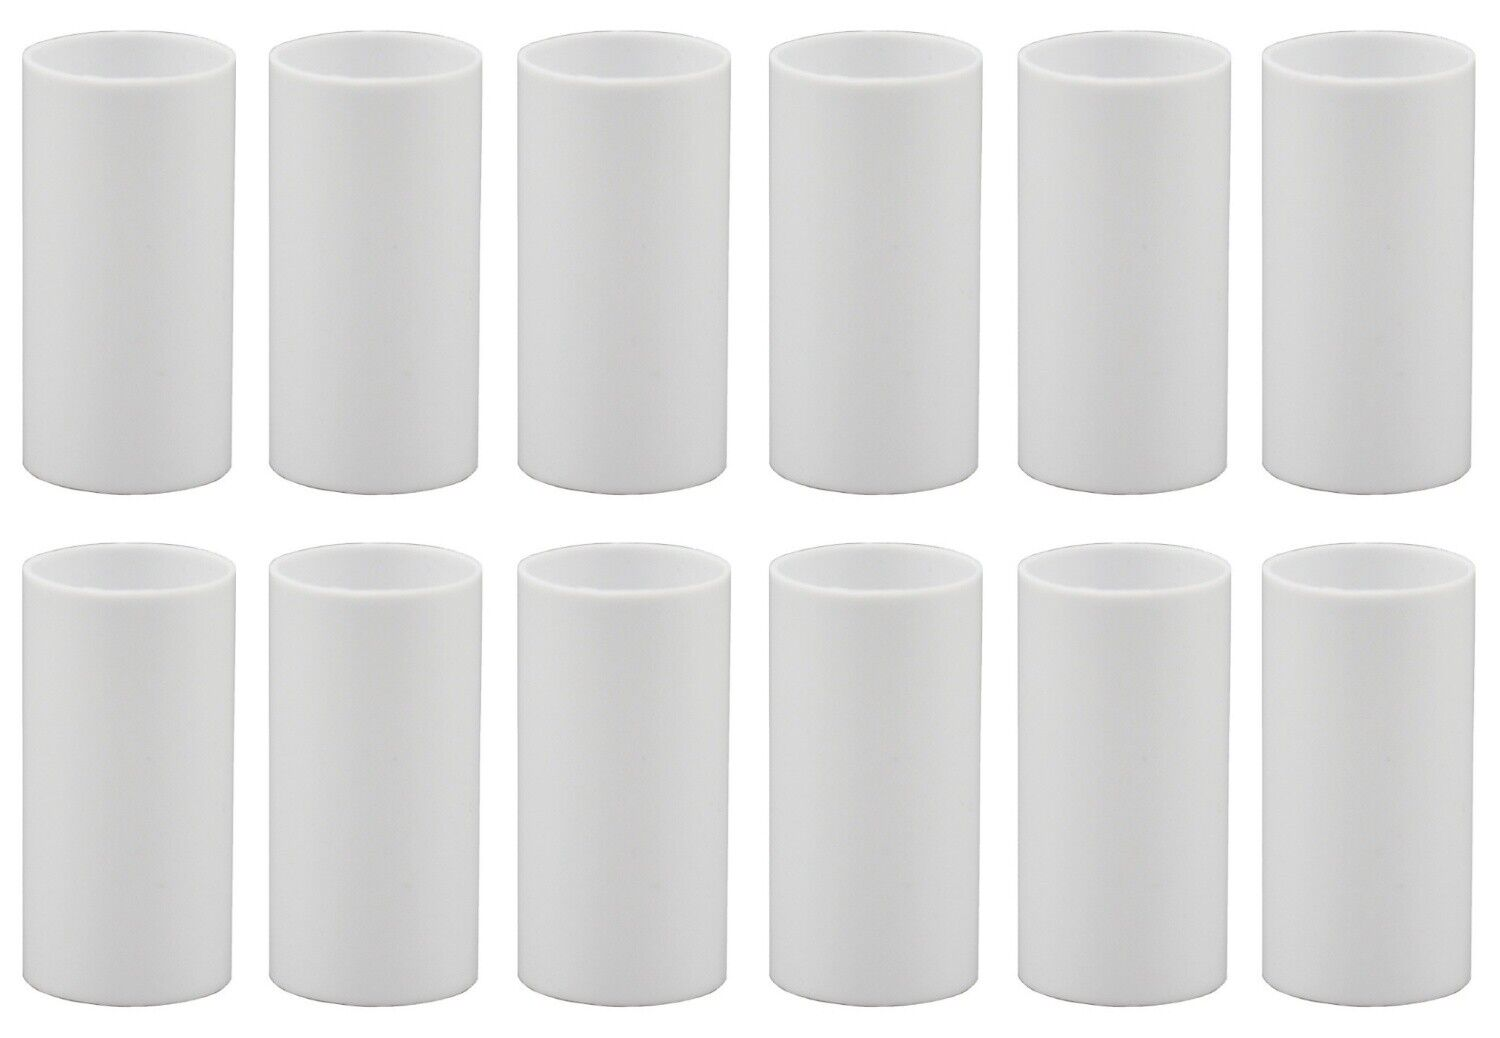 1 3/4 Inch White Plastic Candle Cover For Candelabra Base Lamp Sockets 12 Pieces Collectibles